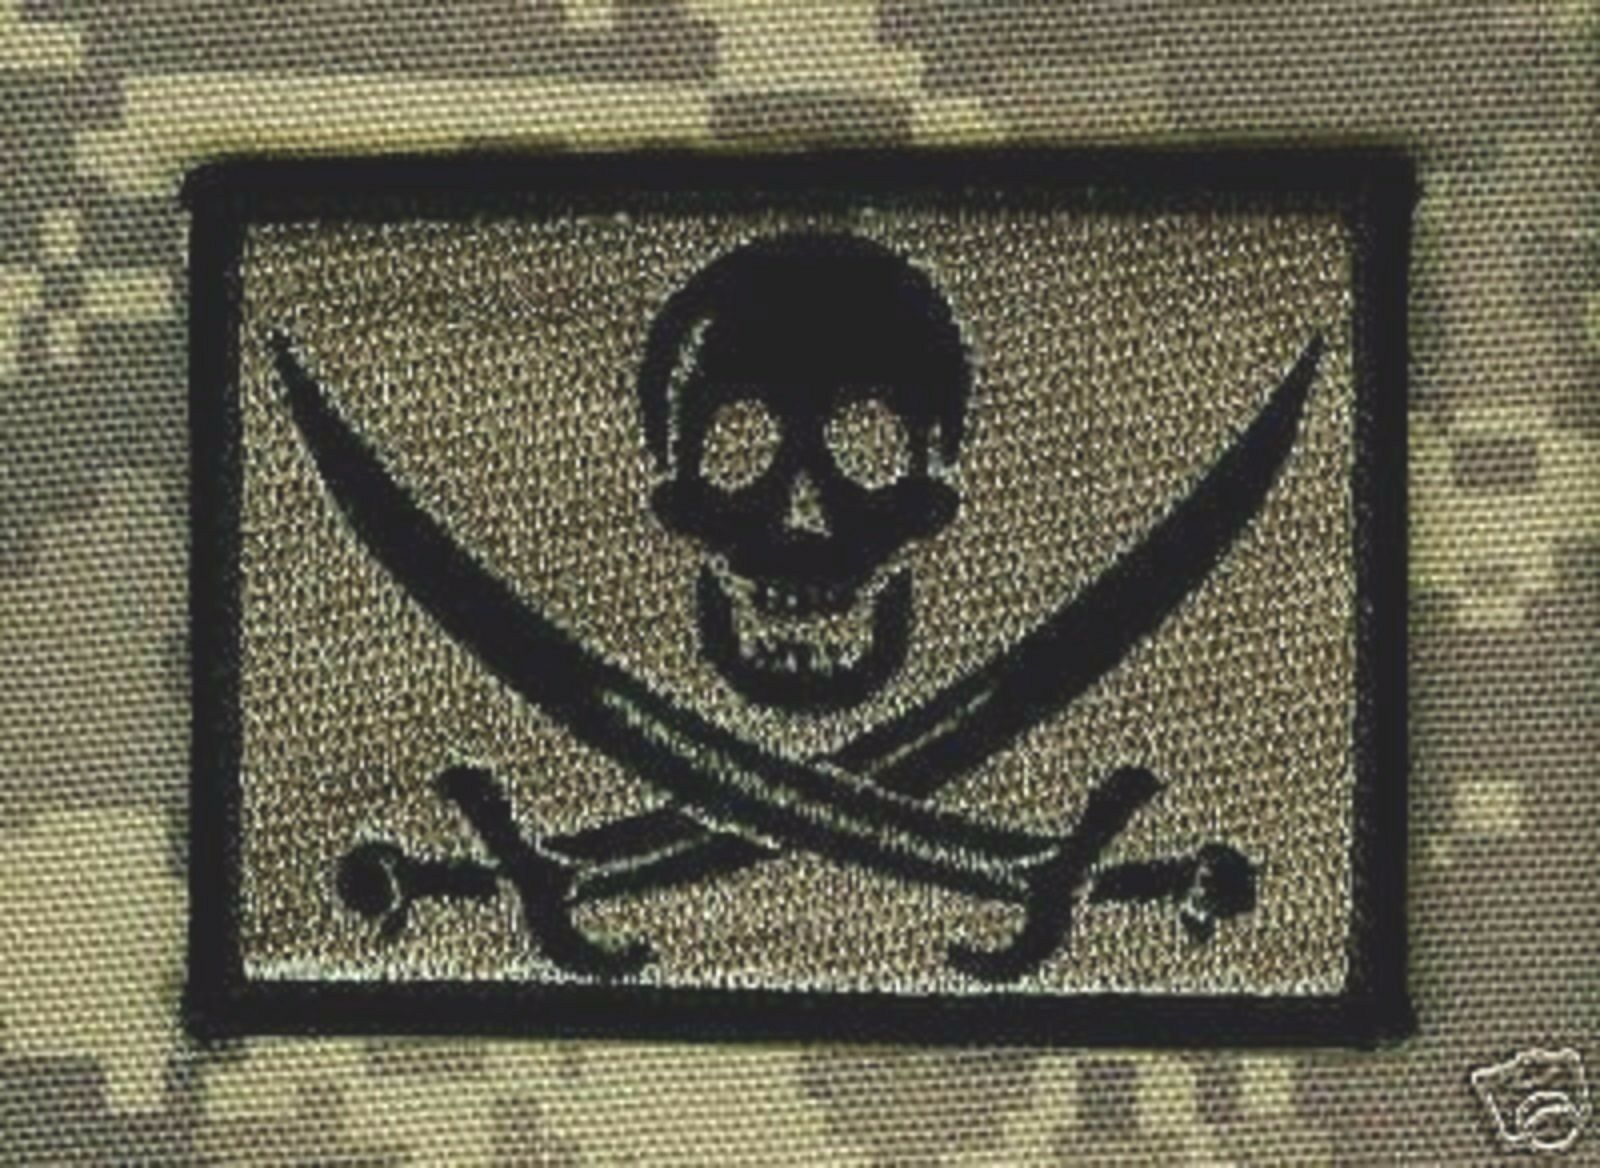 AFSOC COMBAT CONTROL DEATH on CALL SHOULDER VELCRO PATCH: CALICO JACK SKULL ACU